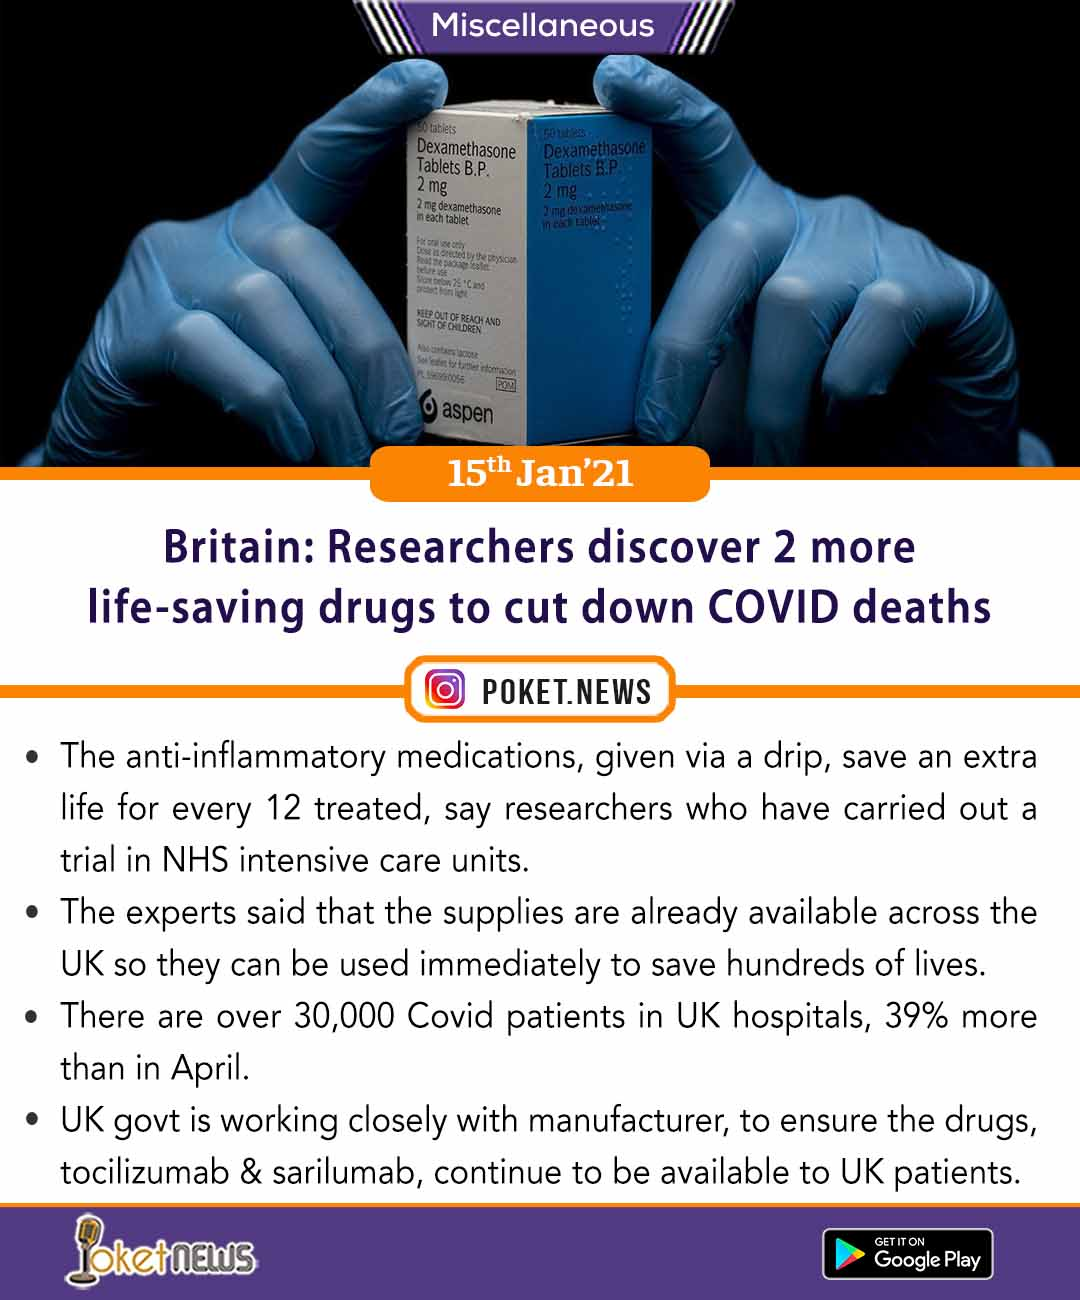 Britain: Researchers discover 2 more life-saving drugs to cut down COVID deaths